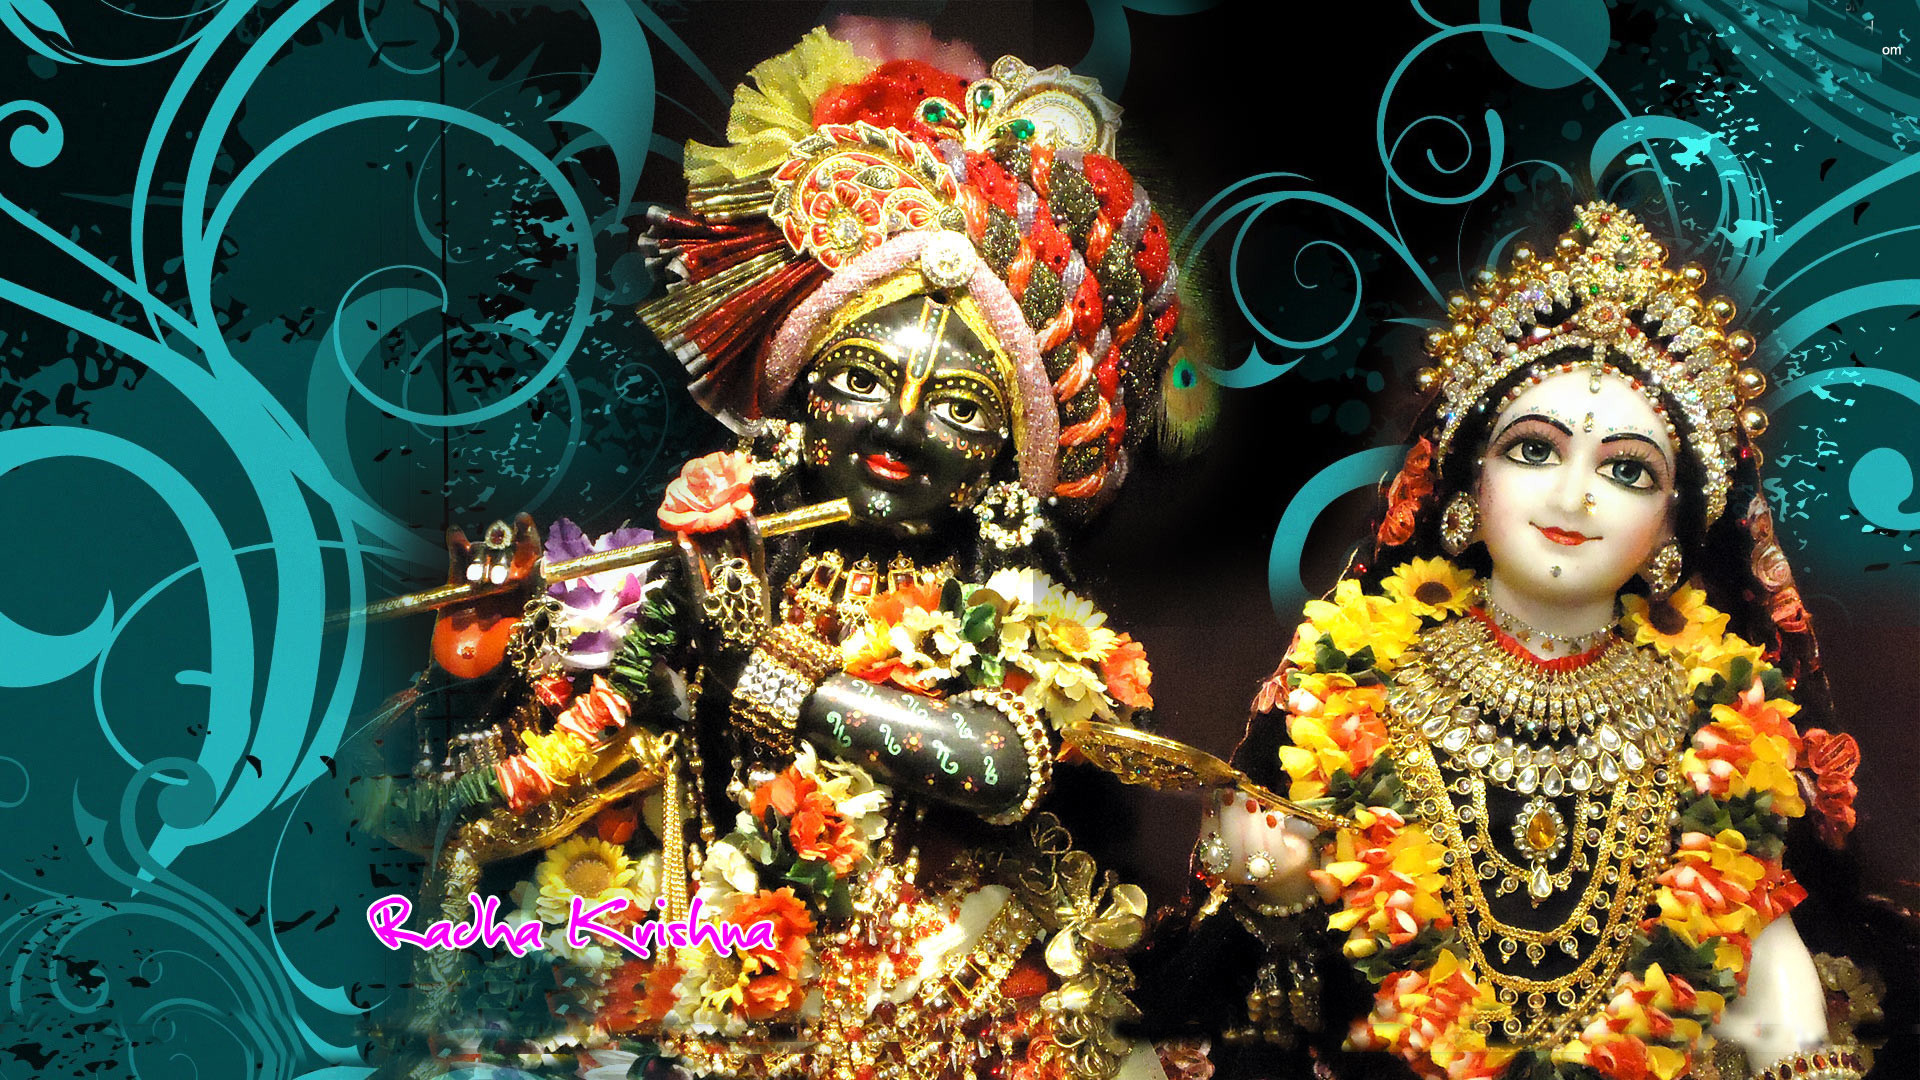 Lord krishna hd wallpapers for iphone94